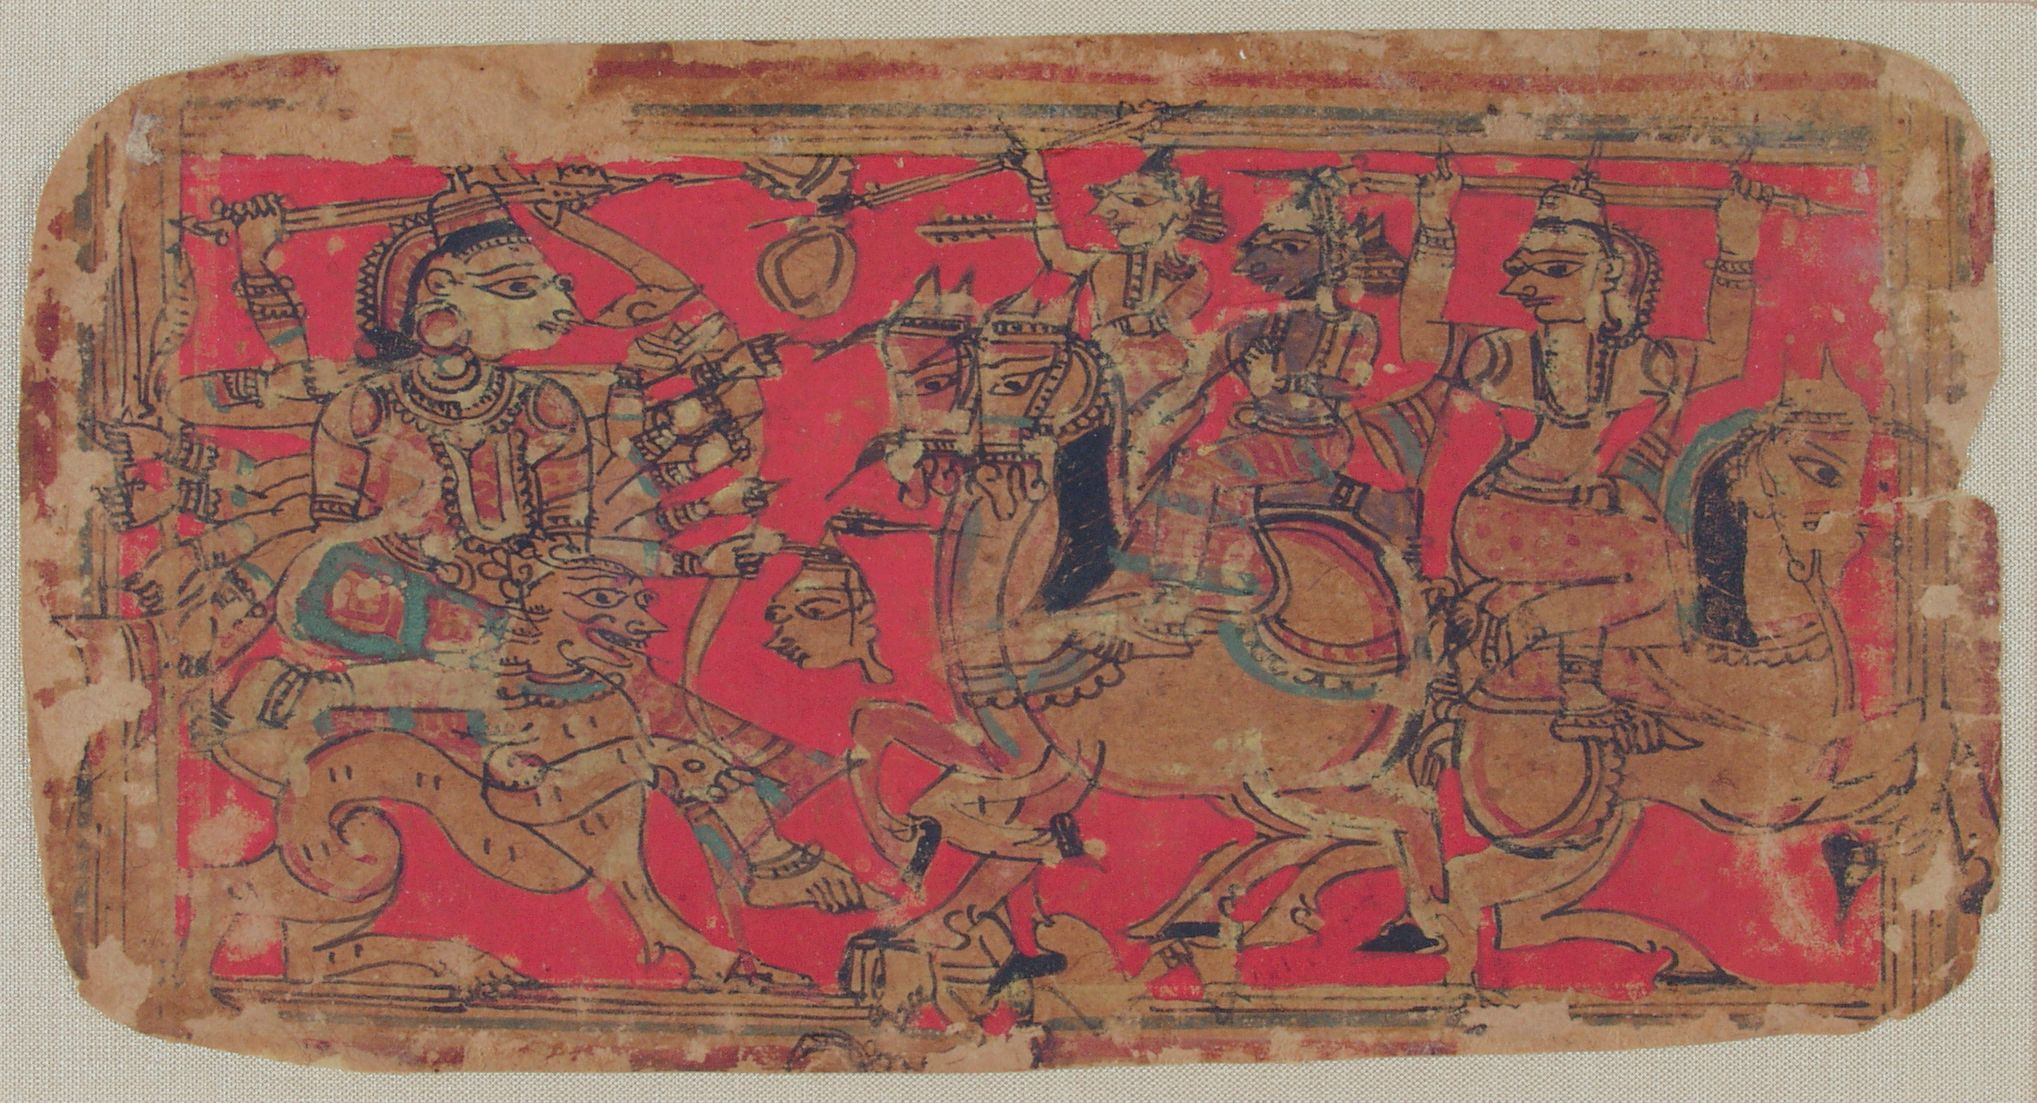 The Goddess Durga Battles Demons, Folio From A Manuscript Of The Durgasaptashati (Seven Hundred Couplets In Praise Of Durga)